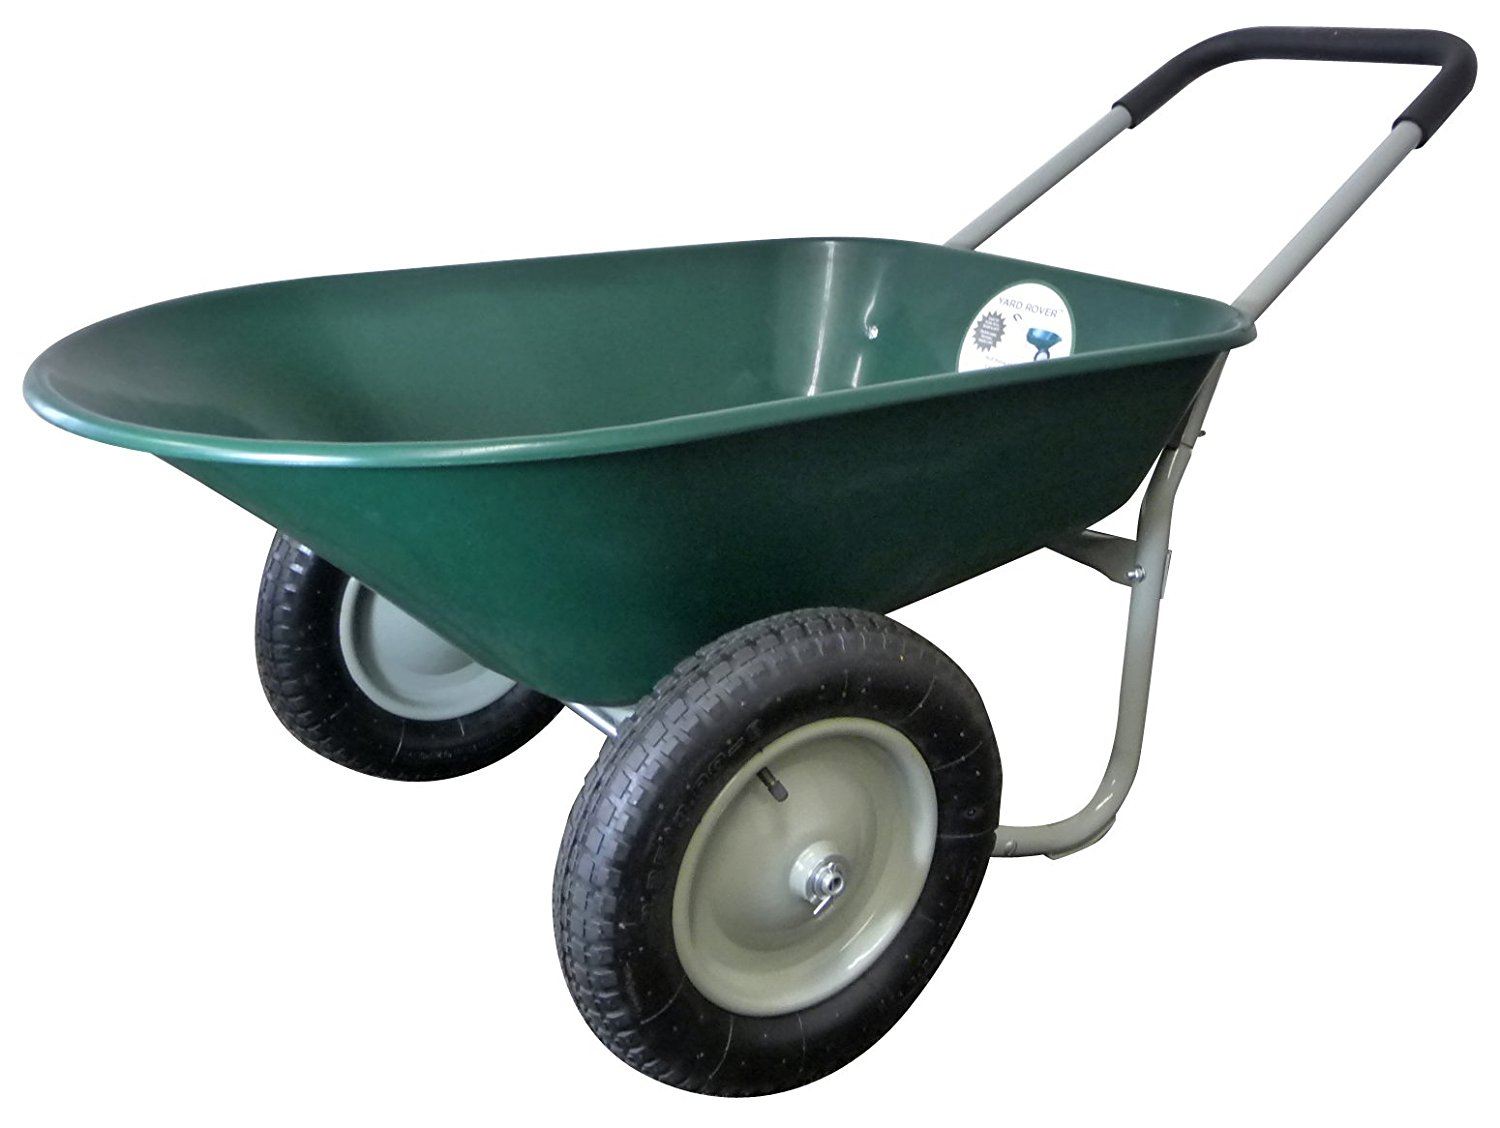 Wheelbarrow Tires - Finding the Right One for your Wheelbarrow